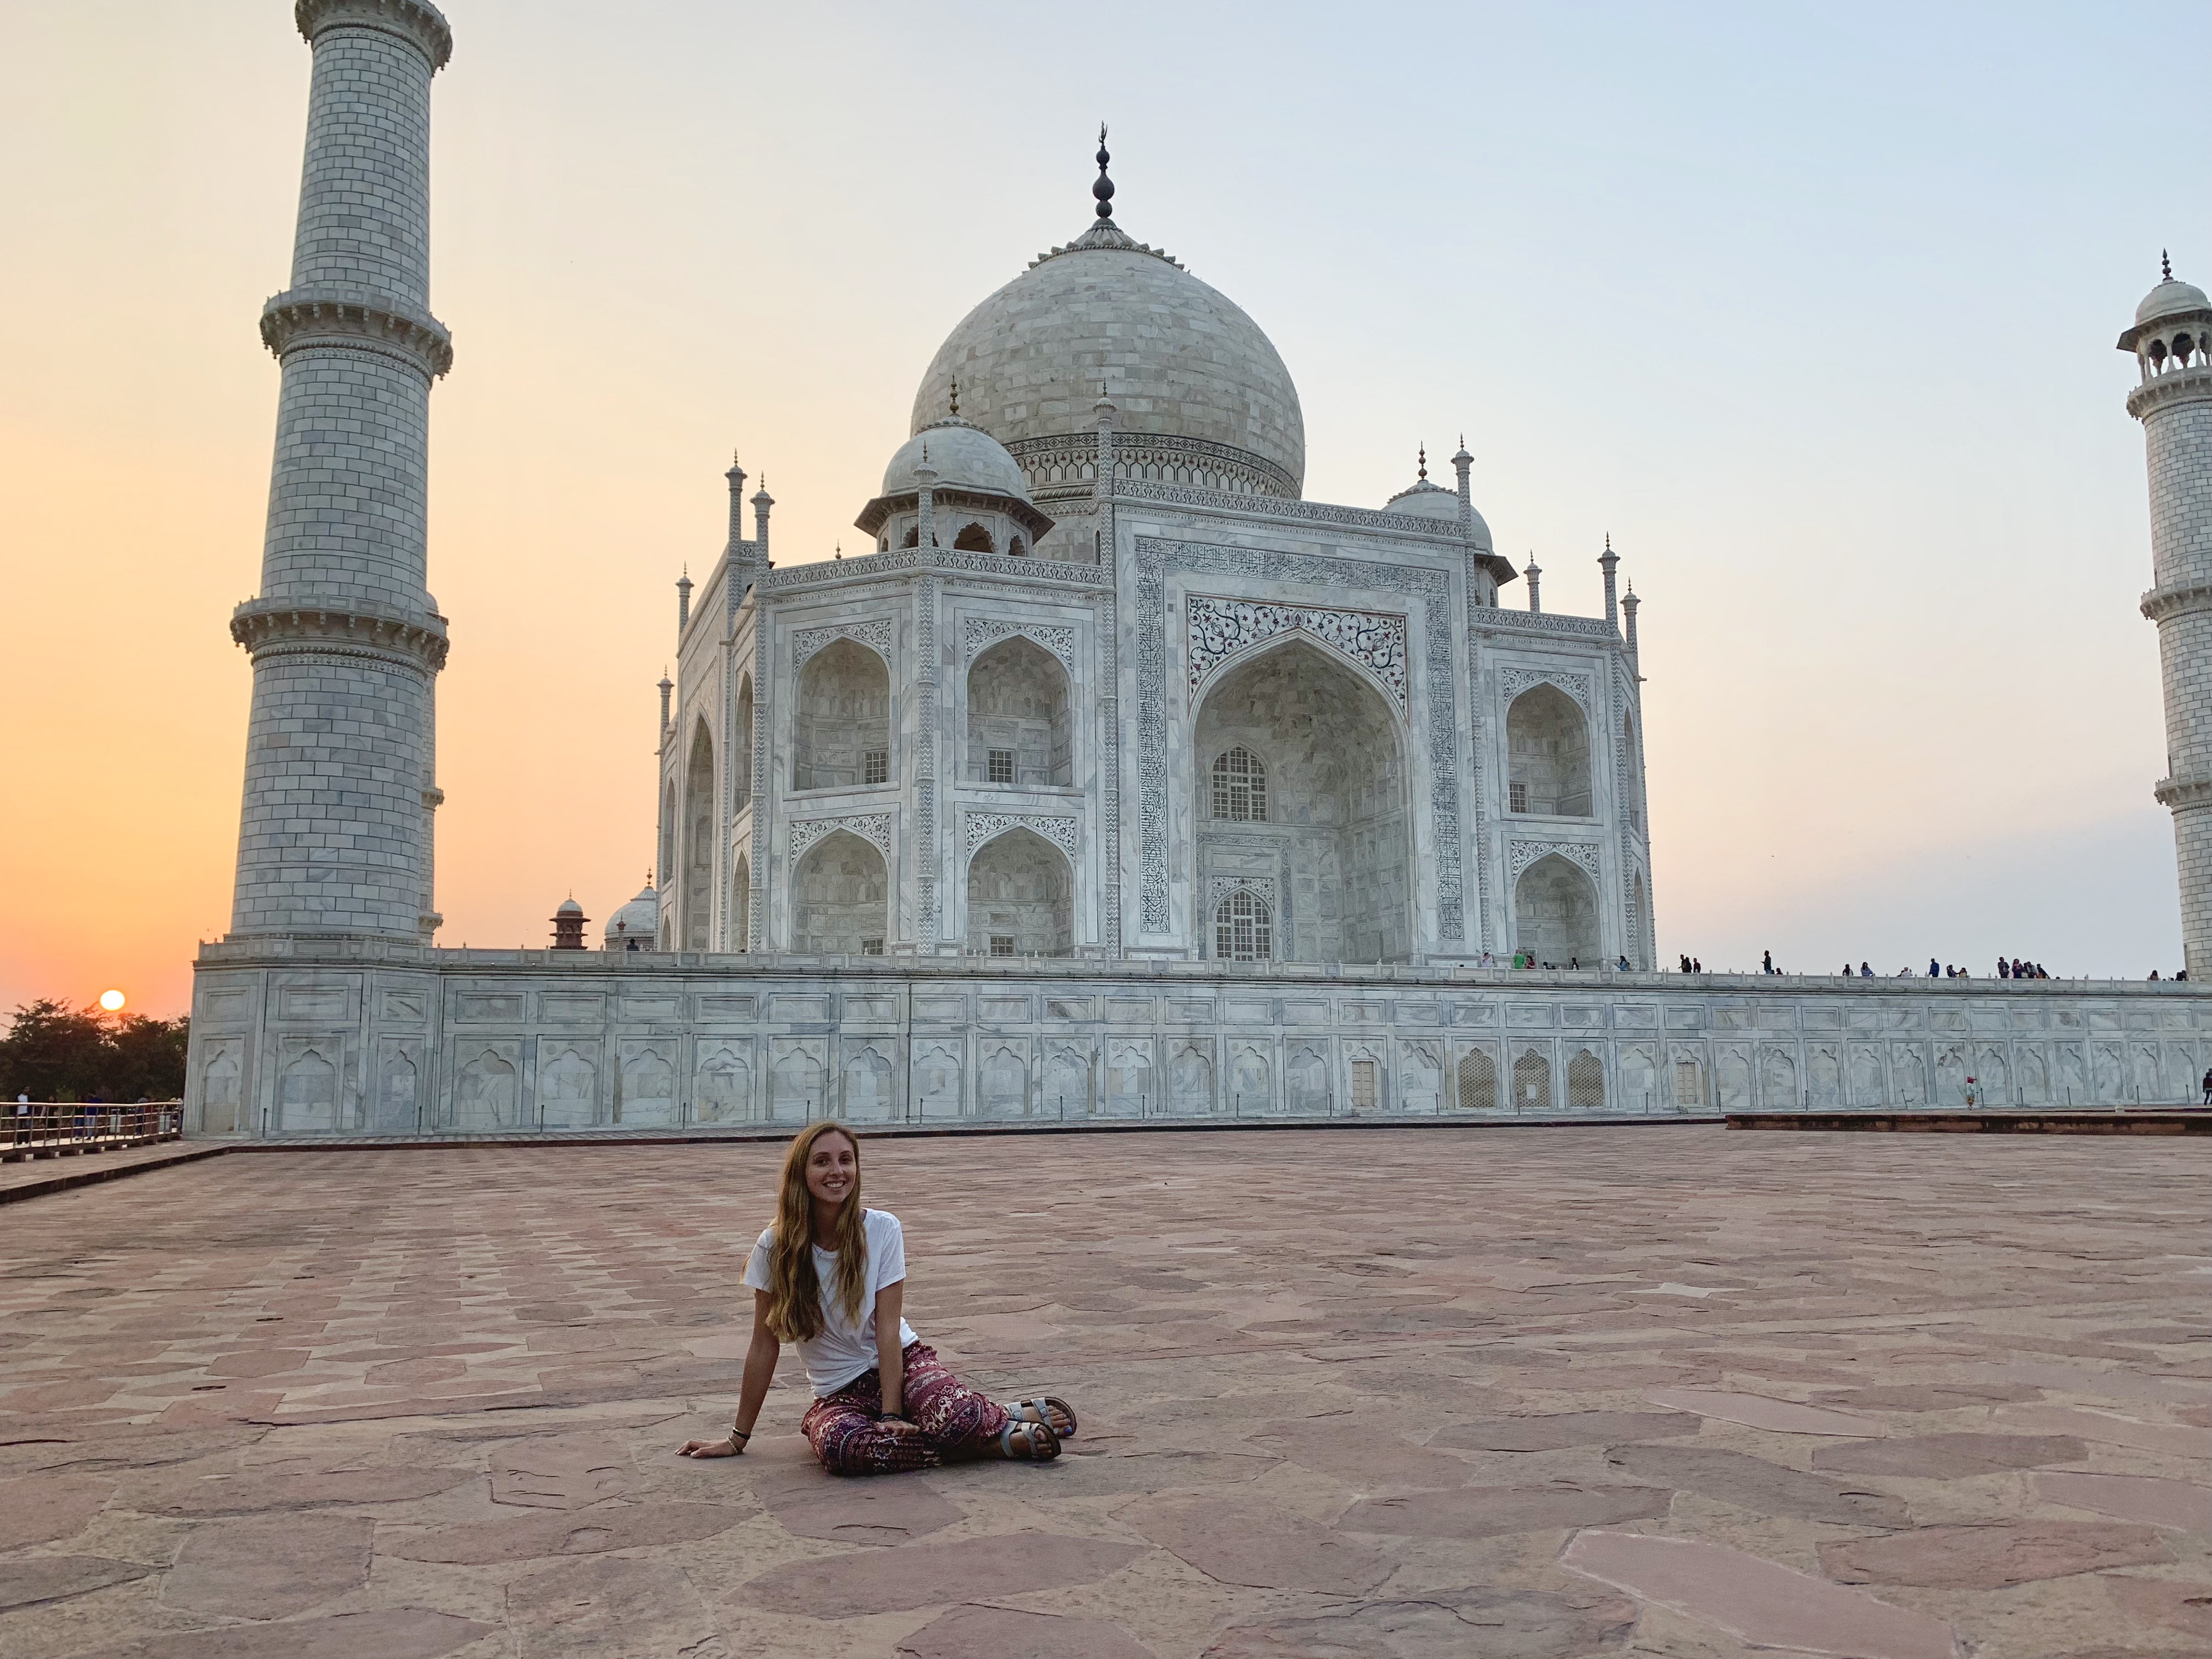 A woman poses in front of the Taj Mahal